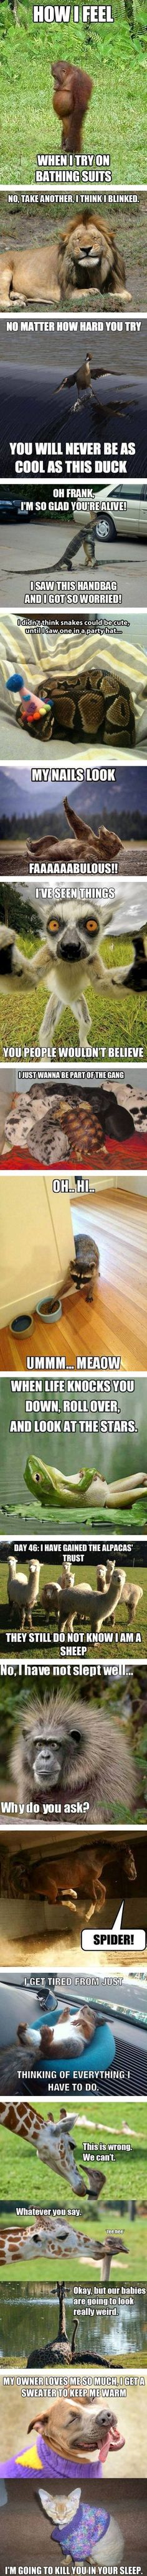 Funny Animal Memes Pictures, Photos, and Images for Facebook, Tumblr, Pinterest, and Twitter